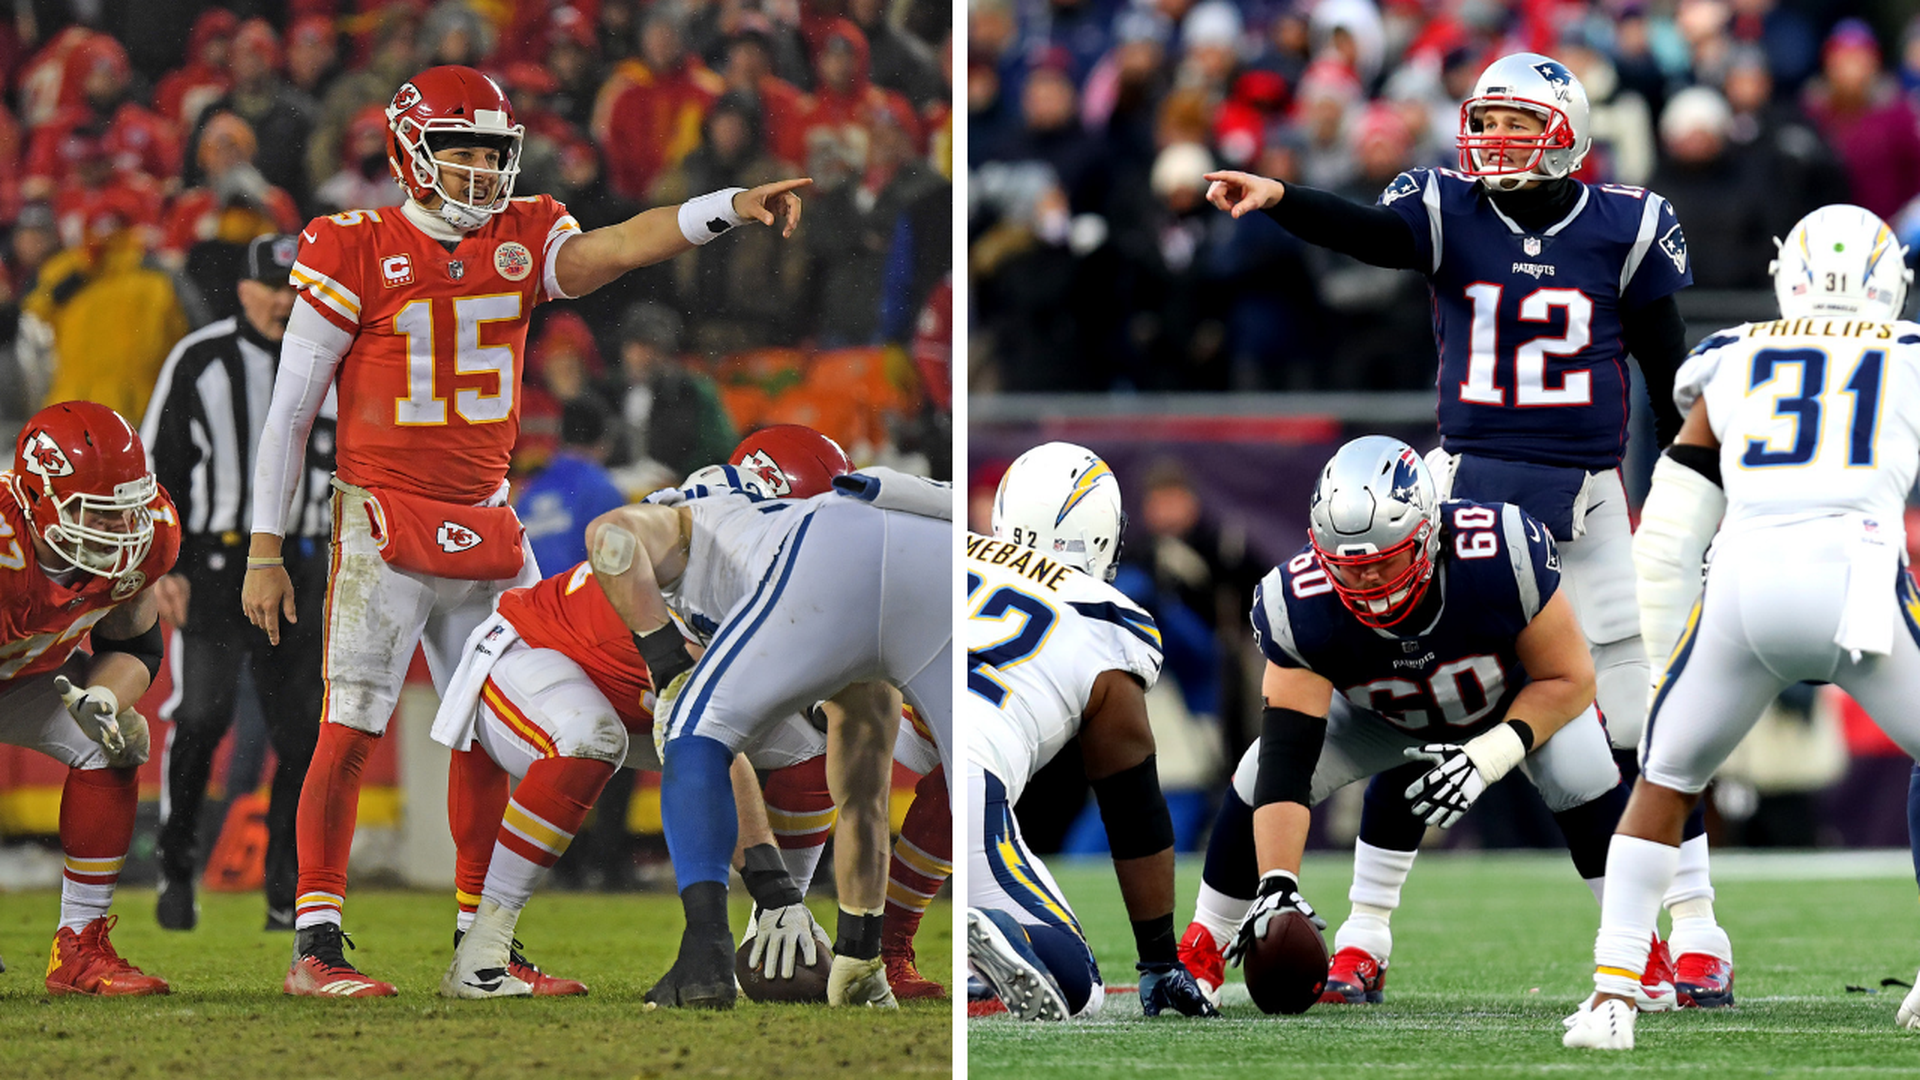 Pat Mahomes and Tom Brady side-by-side